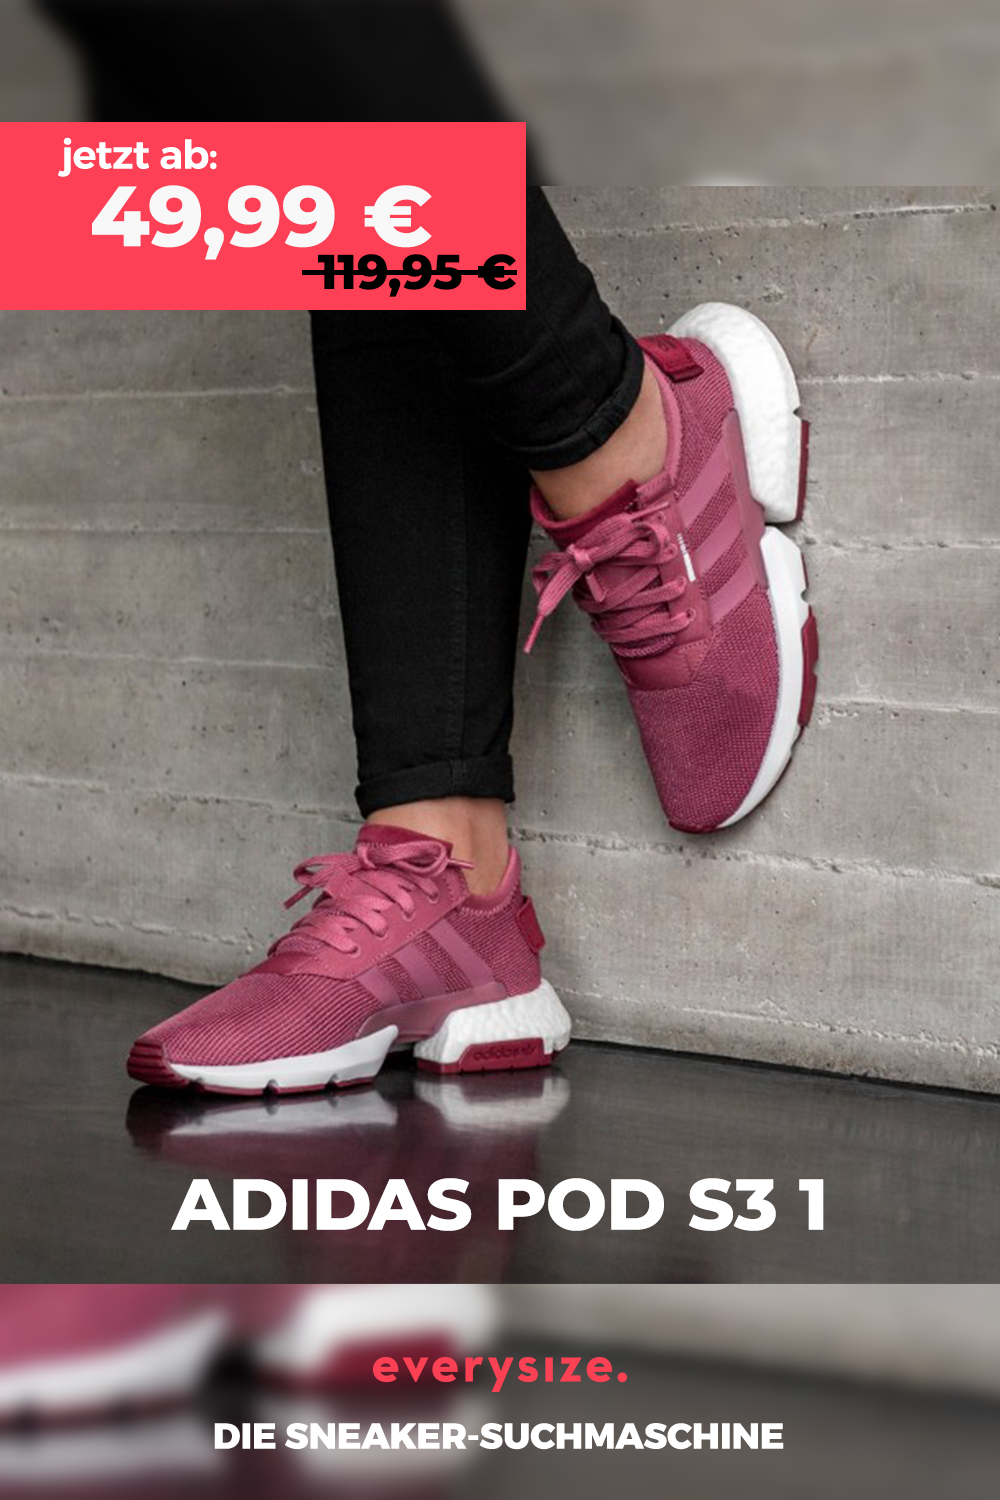 adidas Originals POD S3 1 in pink B37508 in 2020 | Adidas